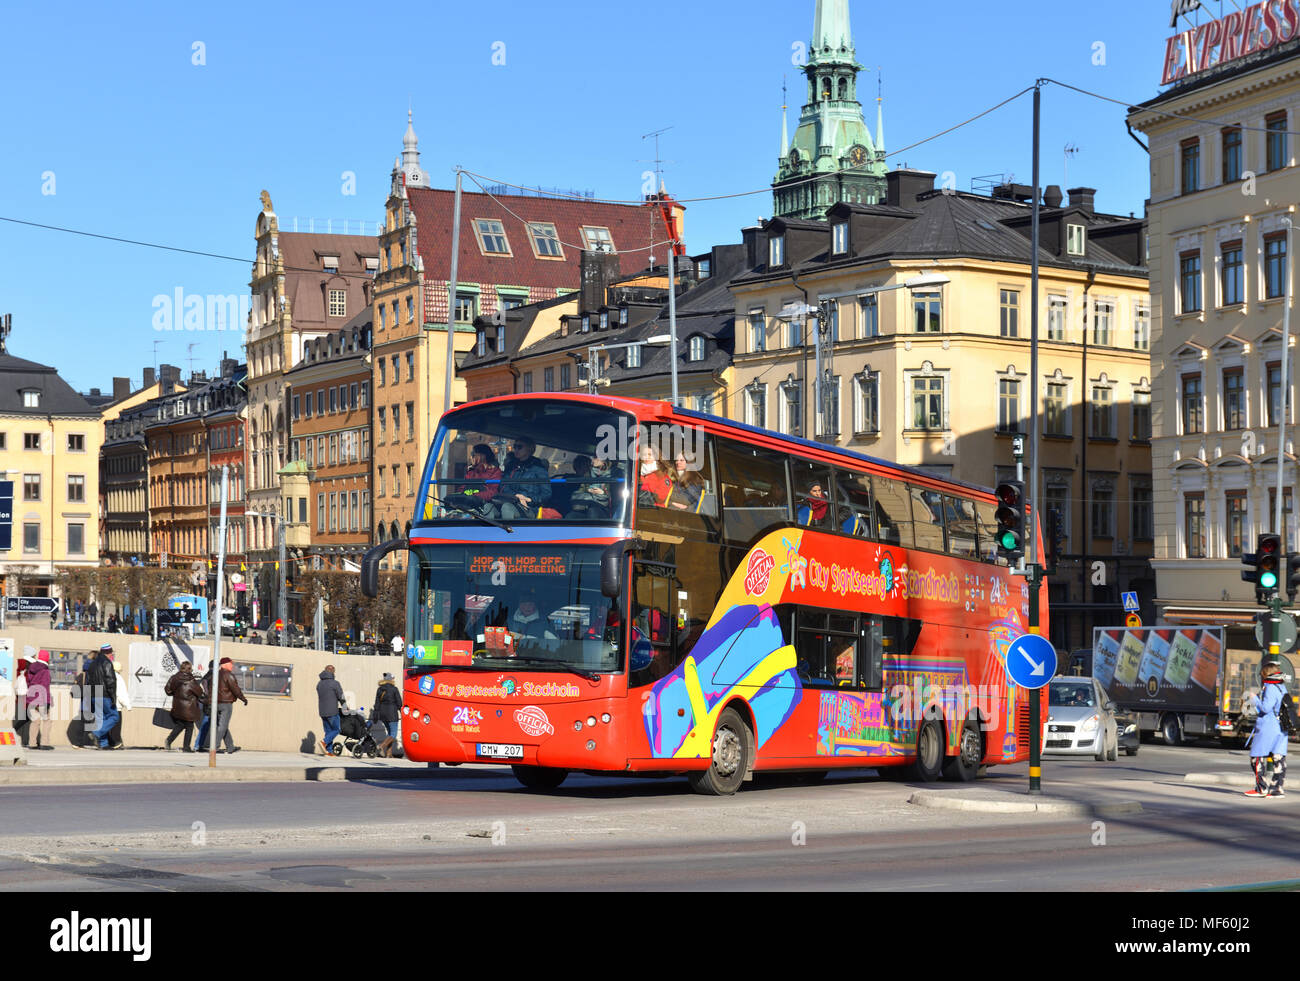 Hop On - Hop Off sightseeing bus - Stock Image